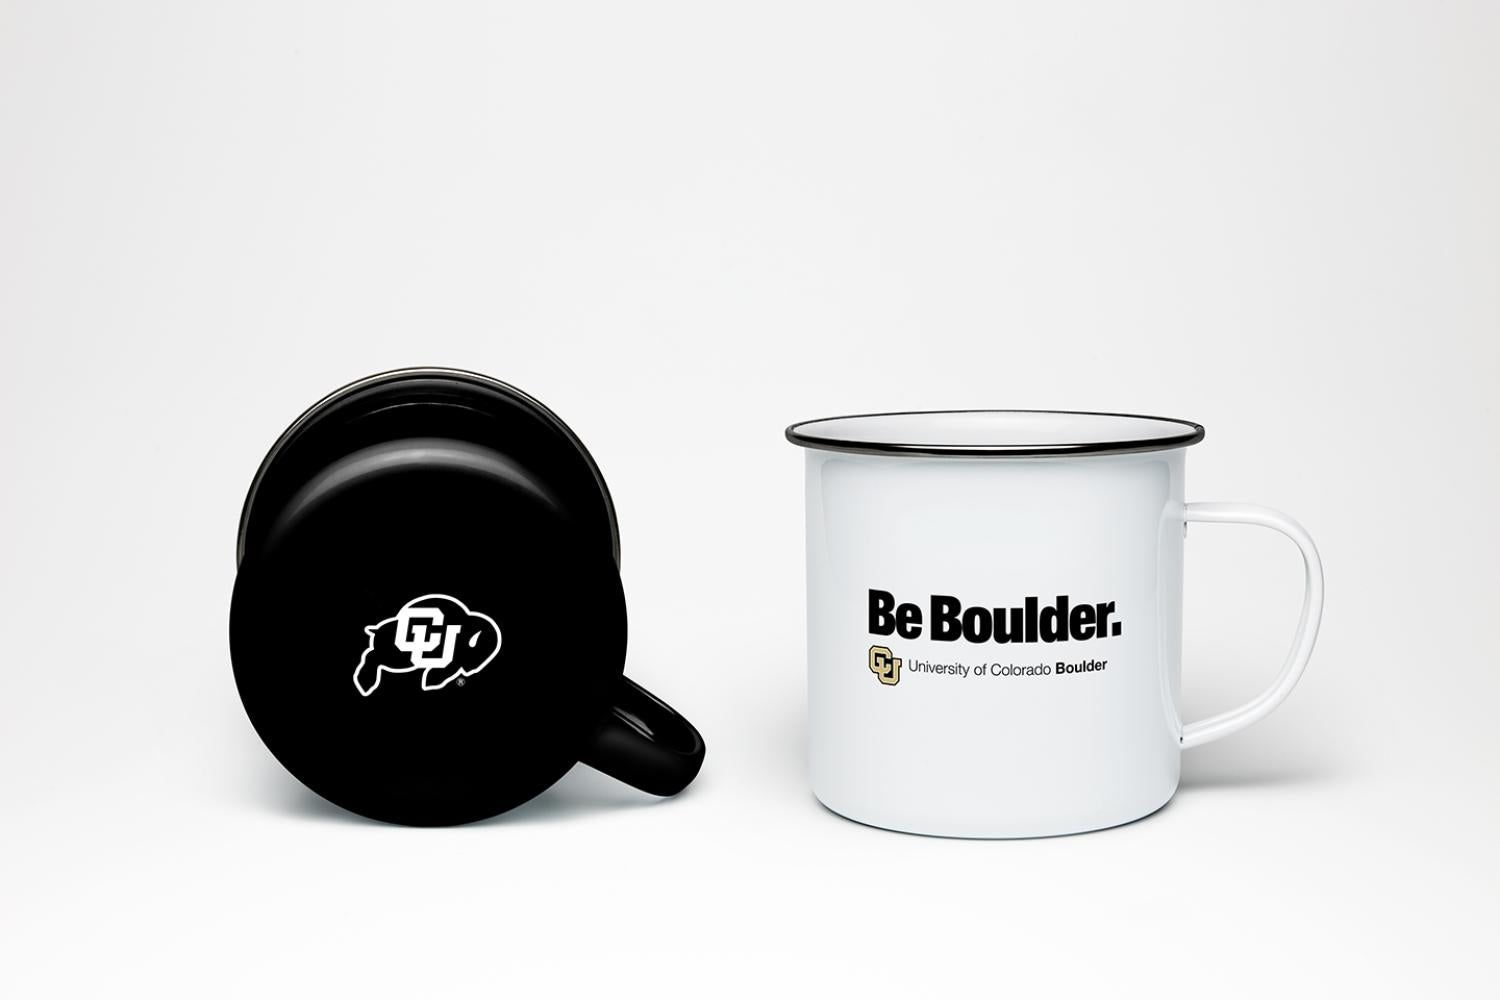 Mugs with CU Boulder branding